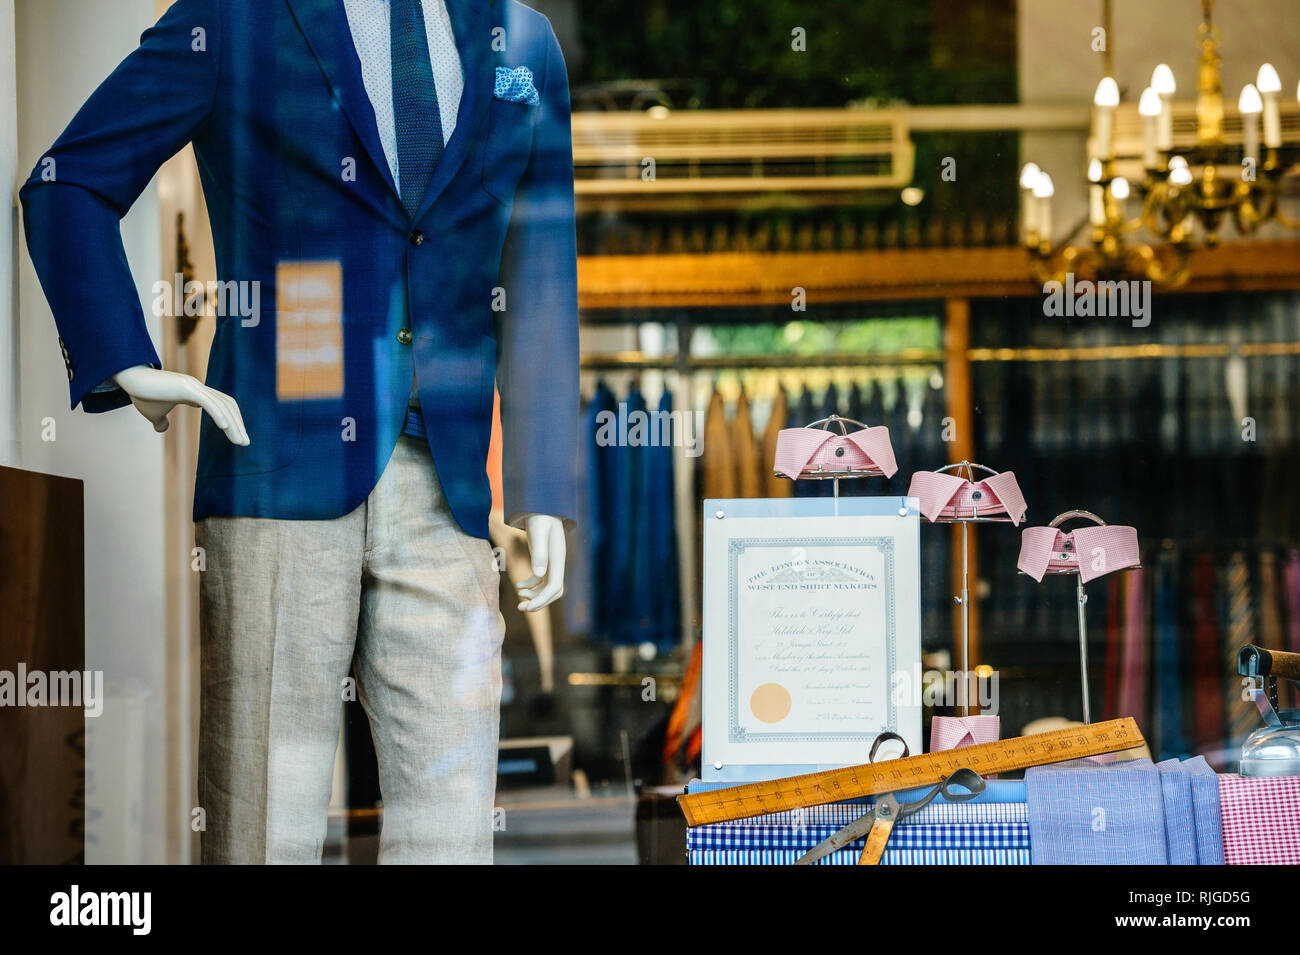 PARIS, FRANCe - MAY 21, 2016: Hilditch and Key luxury store facade with certificate from the The London Associations of West End Shirt Makers and beautiful male suit fashion accessories Paris - Stock Image